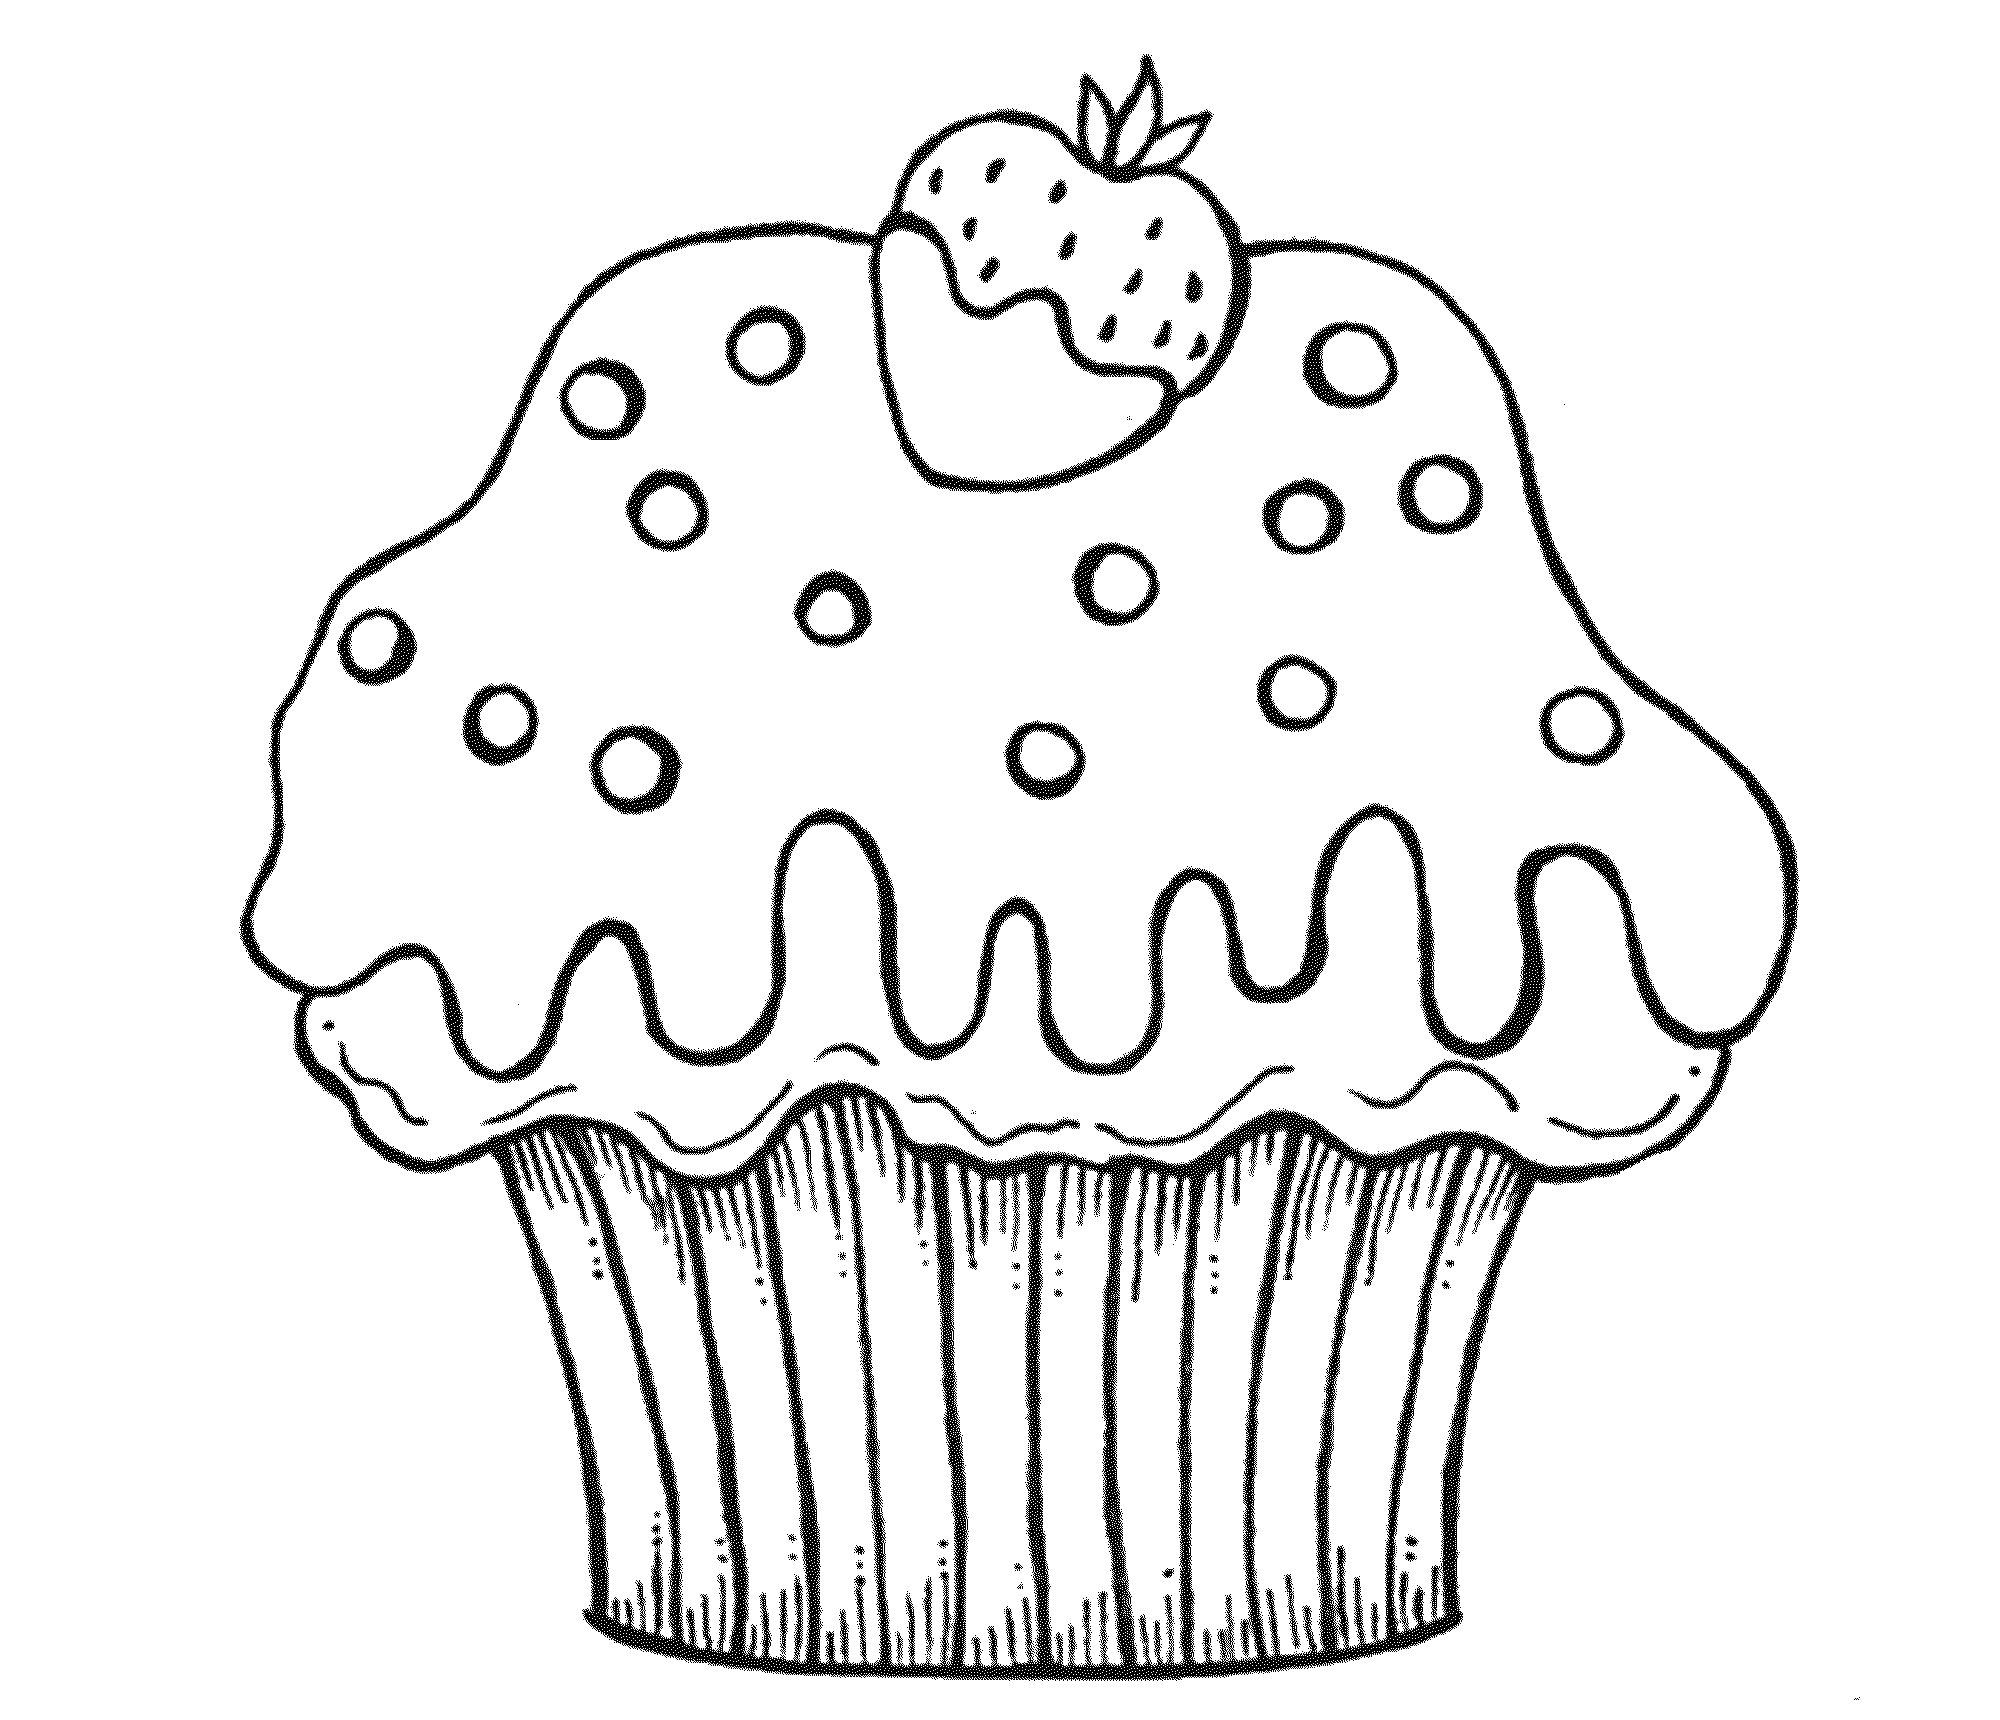 Cupcakes Drawing at GetDrawings.com | Free for personal use Cupcakes ...